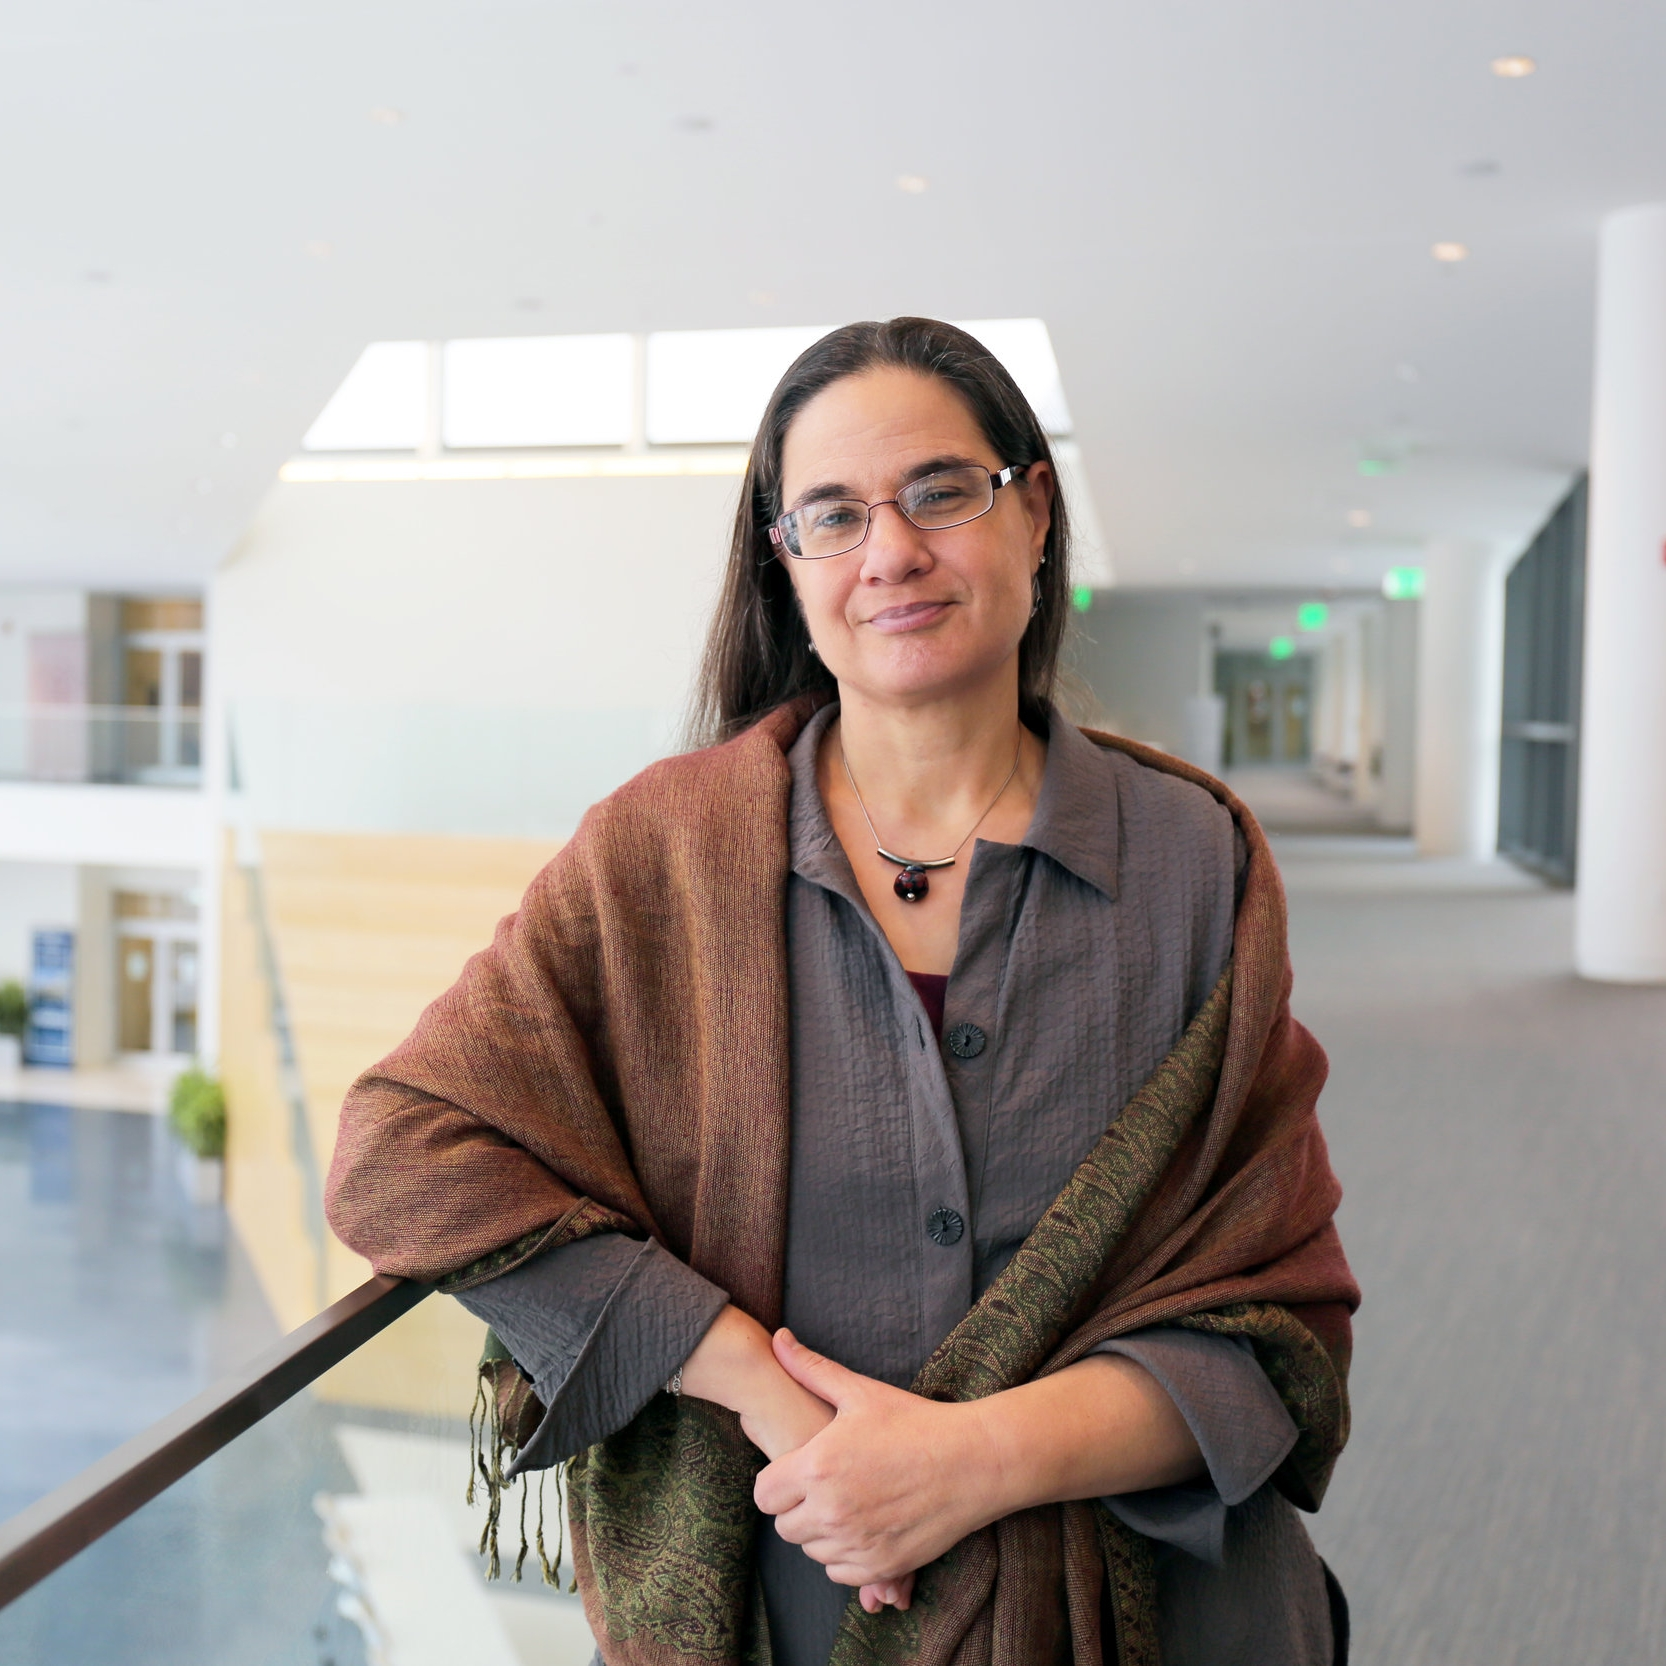 Dr. Lisa Nielson - Dr. Nielson is a historical musicologist specializing in gender, slavery and music in the early Islamicate courts. She is one of two Anisfield-Wolf SAGES Fellows and the Director of the Flora Stone Mather Center for Women. Her classes focus on the mission of the Anisfield-Wolf Book Awards of understanding human difference and include a class on the courtesan, gender segregation and the harem, comparative slavery, and a class dedicated solely to the Anisfield-Wolf book awards. Dr. Nielson has received several undergraduate teaching awards including the Richard A. Bloom, MD Award for Distinguished Teaching in the SAGES Program, the Carl F. Wittke Award for Excellence in Undergraduate Teaching, the J. Bruce Jackson, MD, Award for Excellence in Undergraduate Mentoring and the Faculty Prism Award. Her talk is inspired by her students, and will consider steps we can take to reassess and reset toxic masculinity.